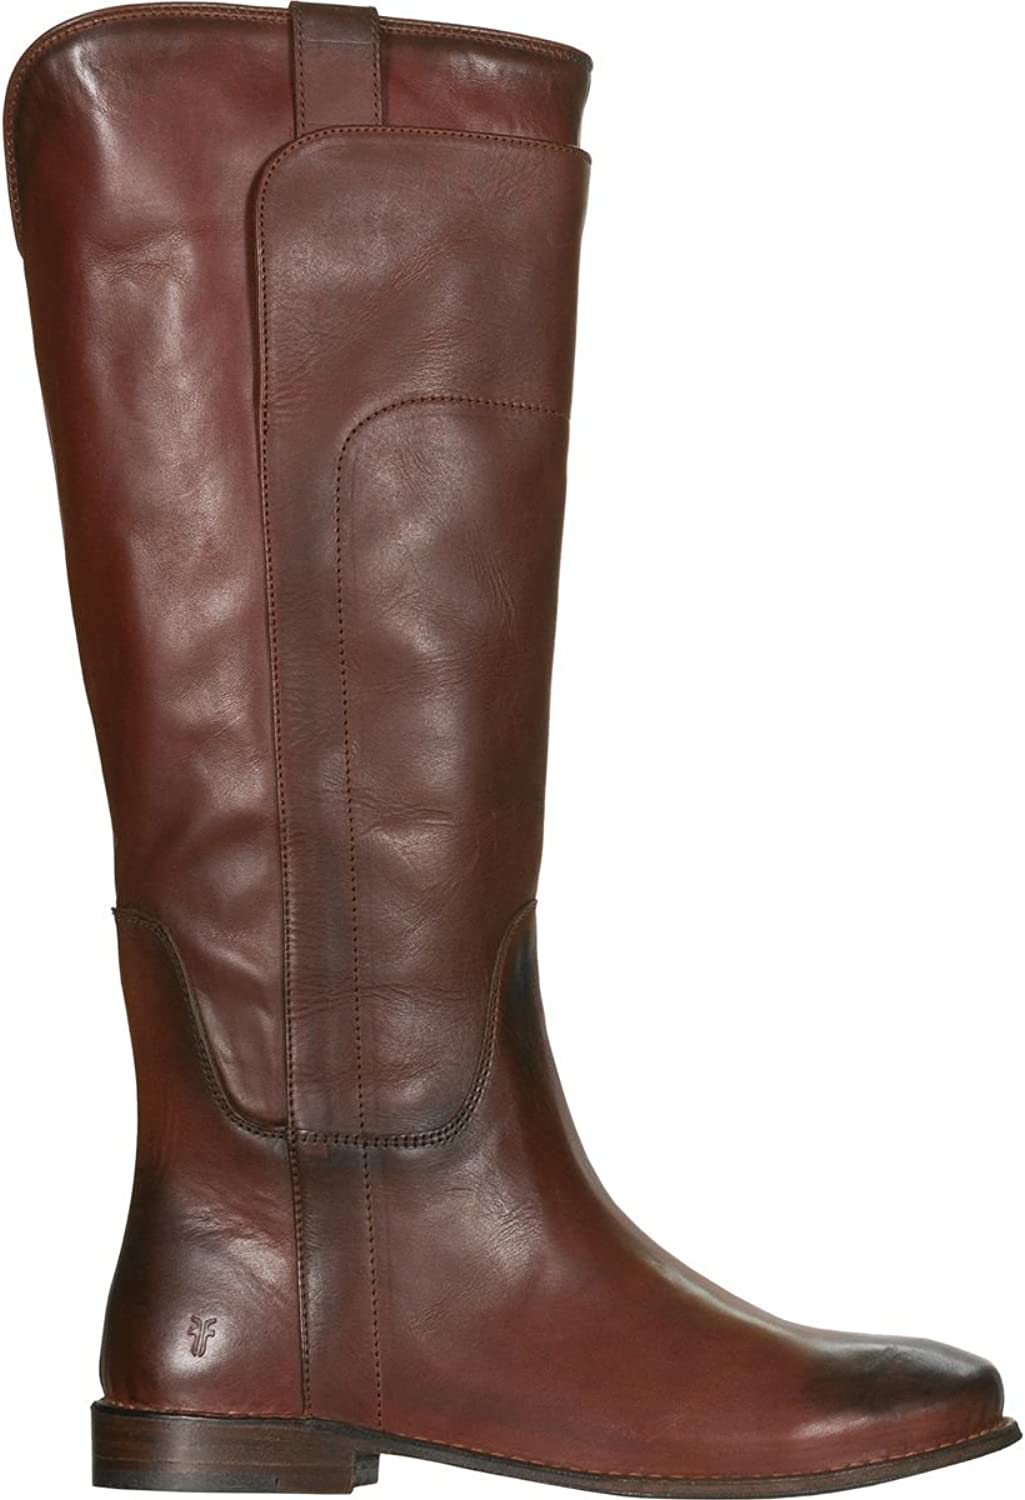 FRYE FRYE Woherren rotwood Paige Tall Riding Stiefel Round Toe rot 6.5 M